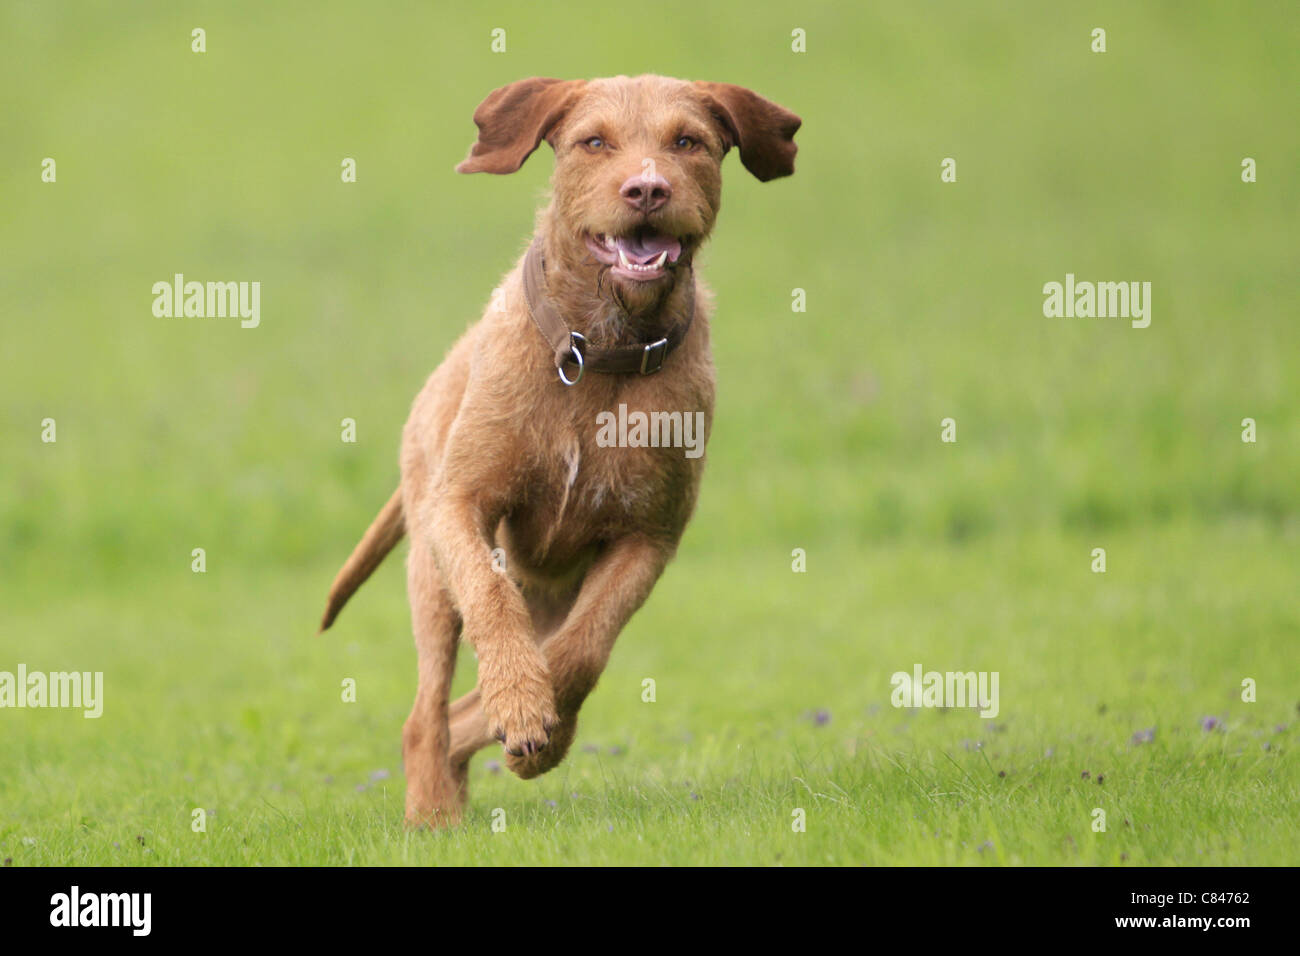 Wirehaired Magyar Vizsla dog - running on meadow - Stock Image